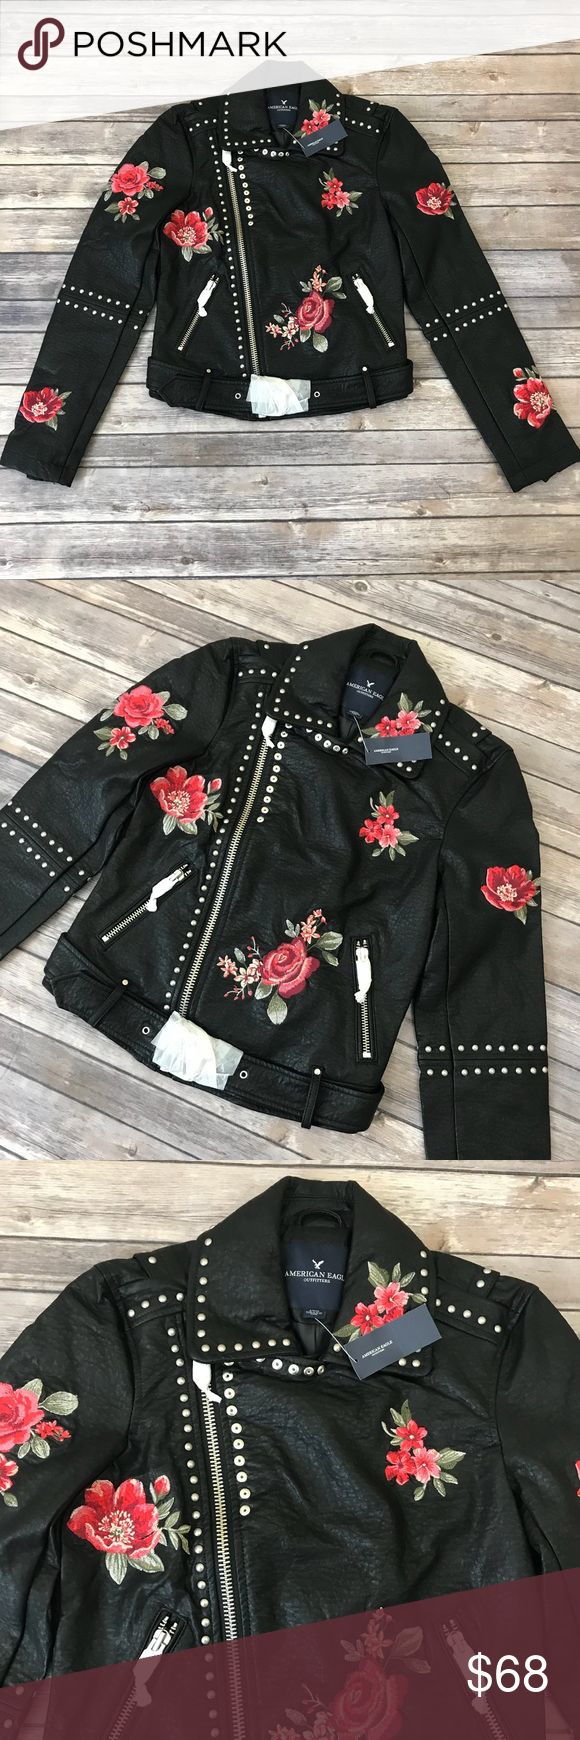 New American Eagle Faux Leather Embroidered Jacket American Eagle Faux Leather Floral Embroidered Studded Moto Jacket •New with tags •Size Small •Retails for $149.95  Check out my other listings- Nike, adidas, Michael Kors, Hunter Boots, Kate Spade, Miss Me, Rock Revival, Coach, Wildfox, Victoria's Slecret, PINK, True Religion, Ugg Australia, Free People and more! American Eagle Outfitters Jackets & Coats